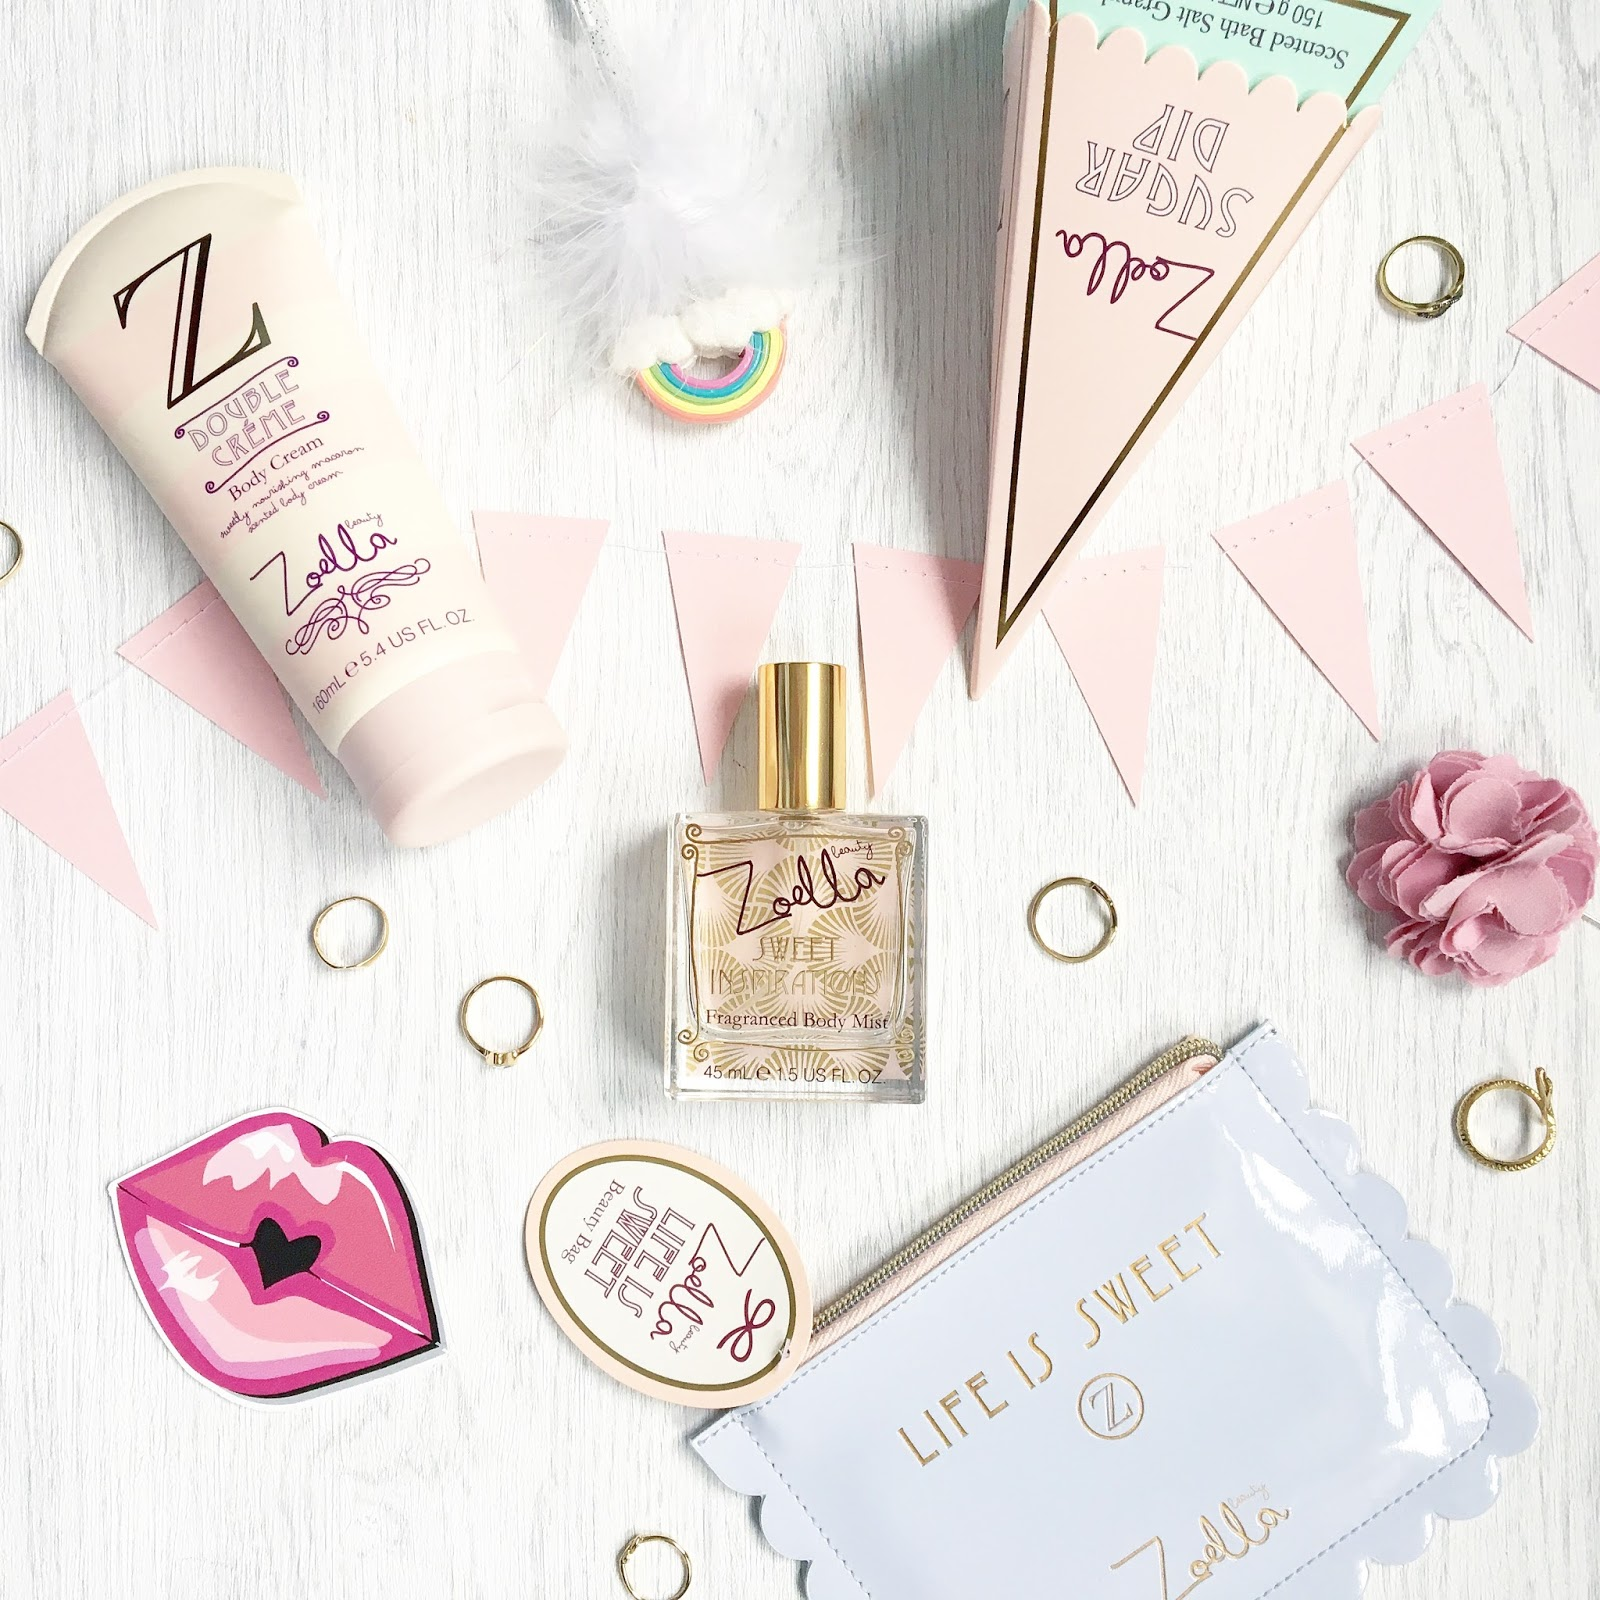 Creating the perfect flat lay photo - Zoella Beauty products